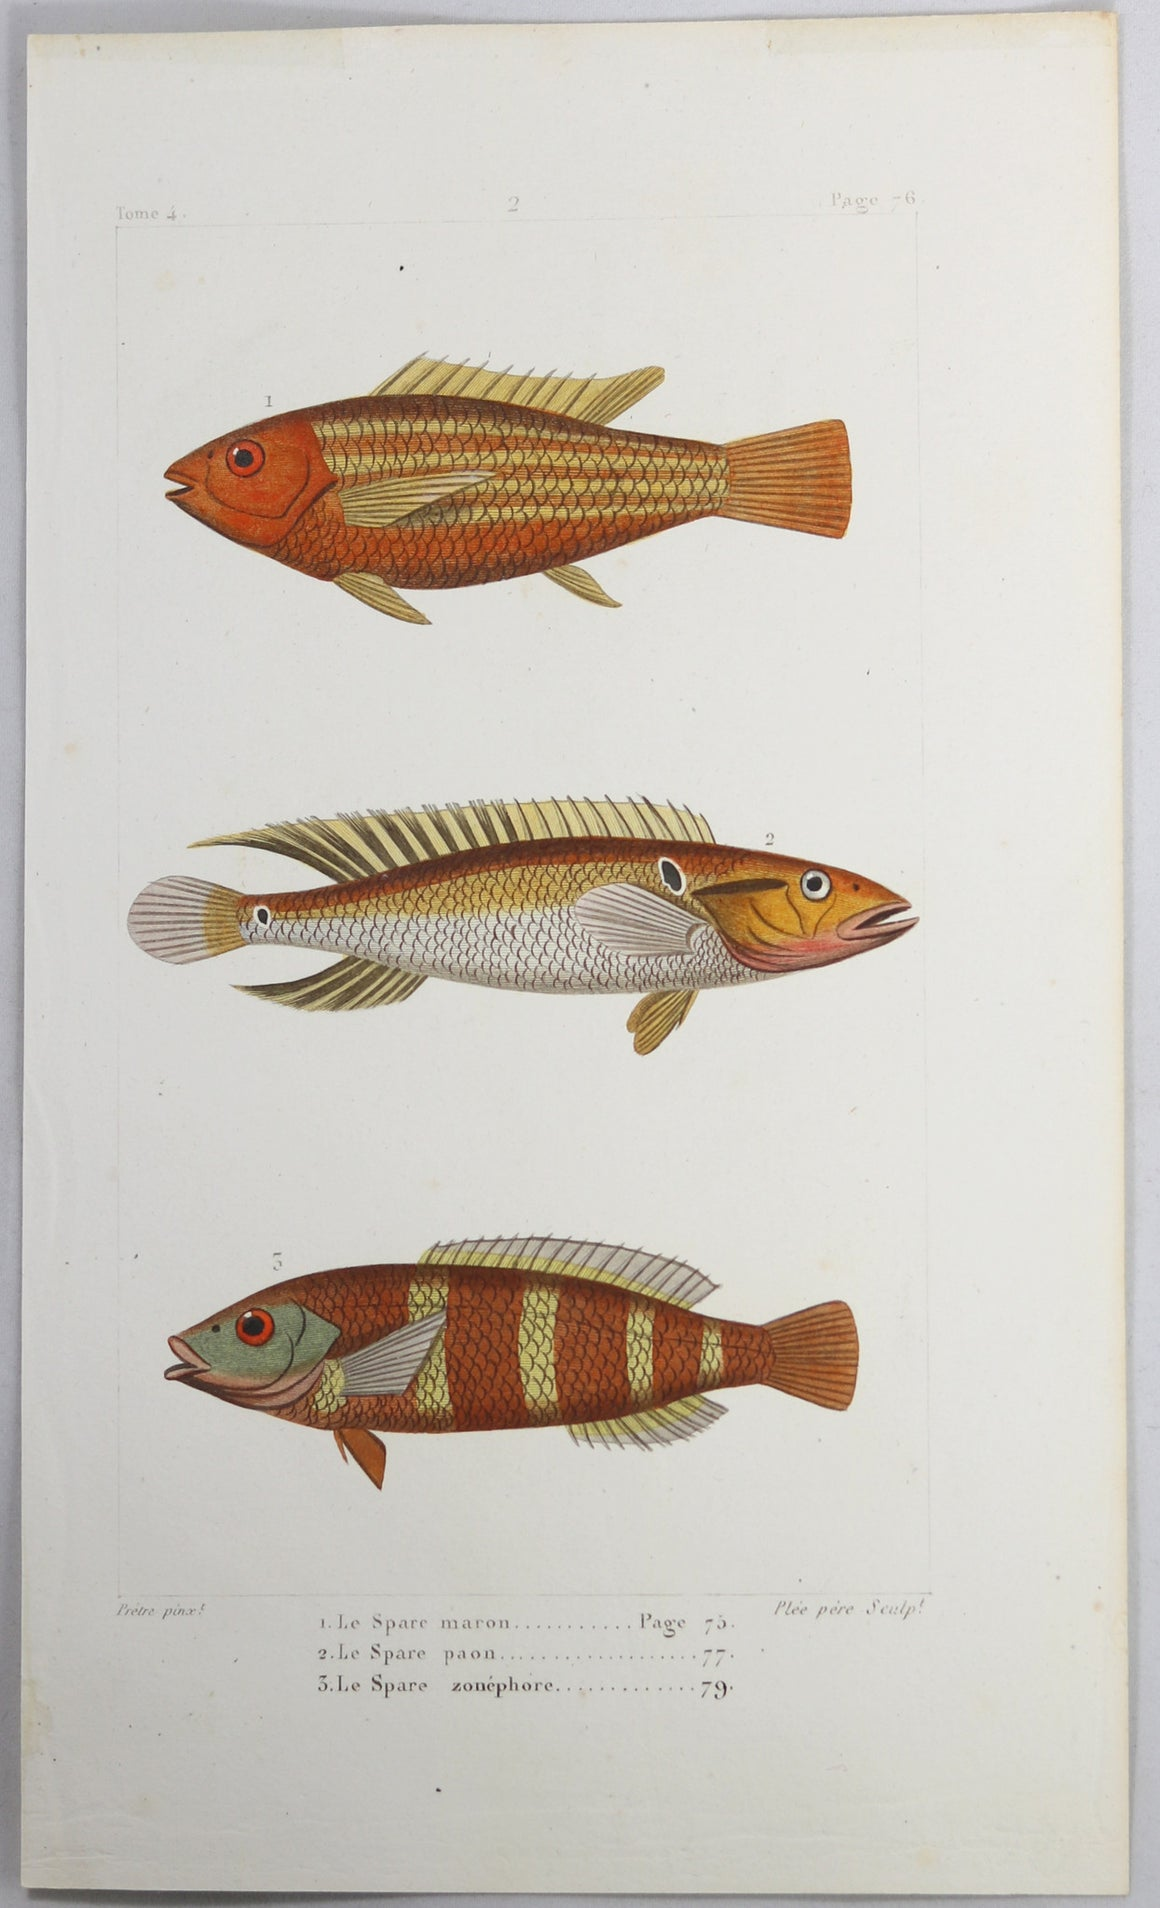 @1819 French Prêtre fish print with 3 species bream